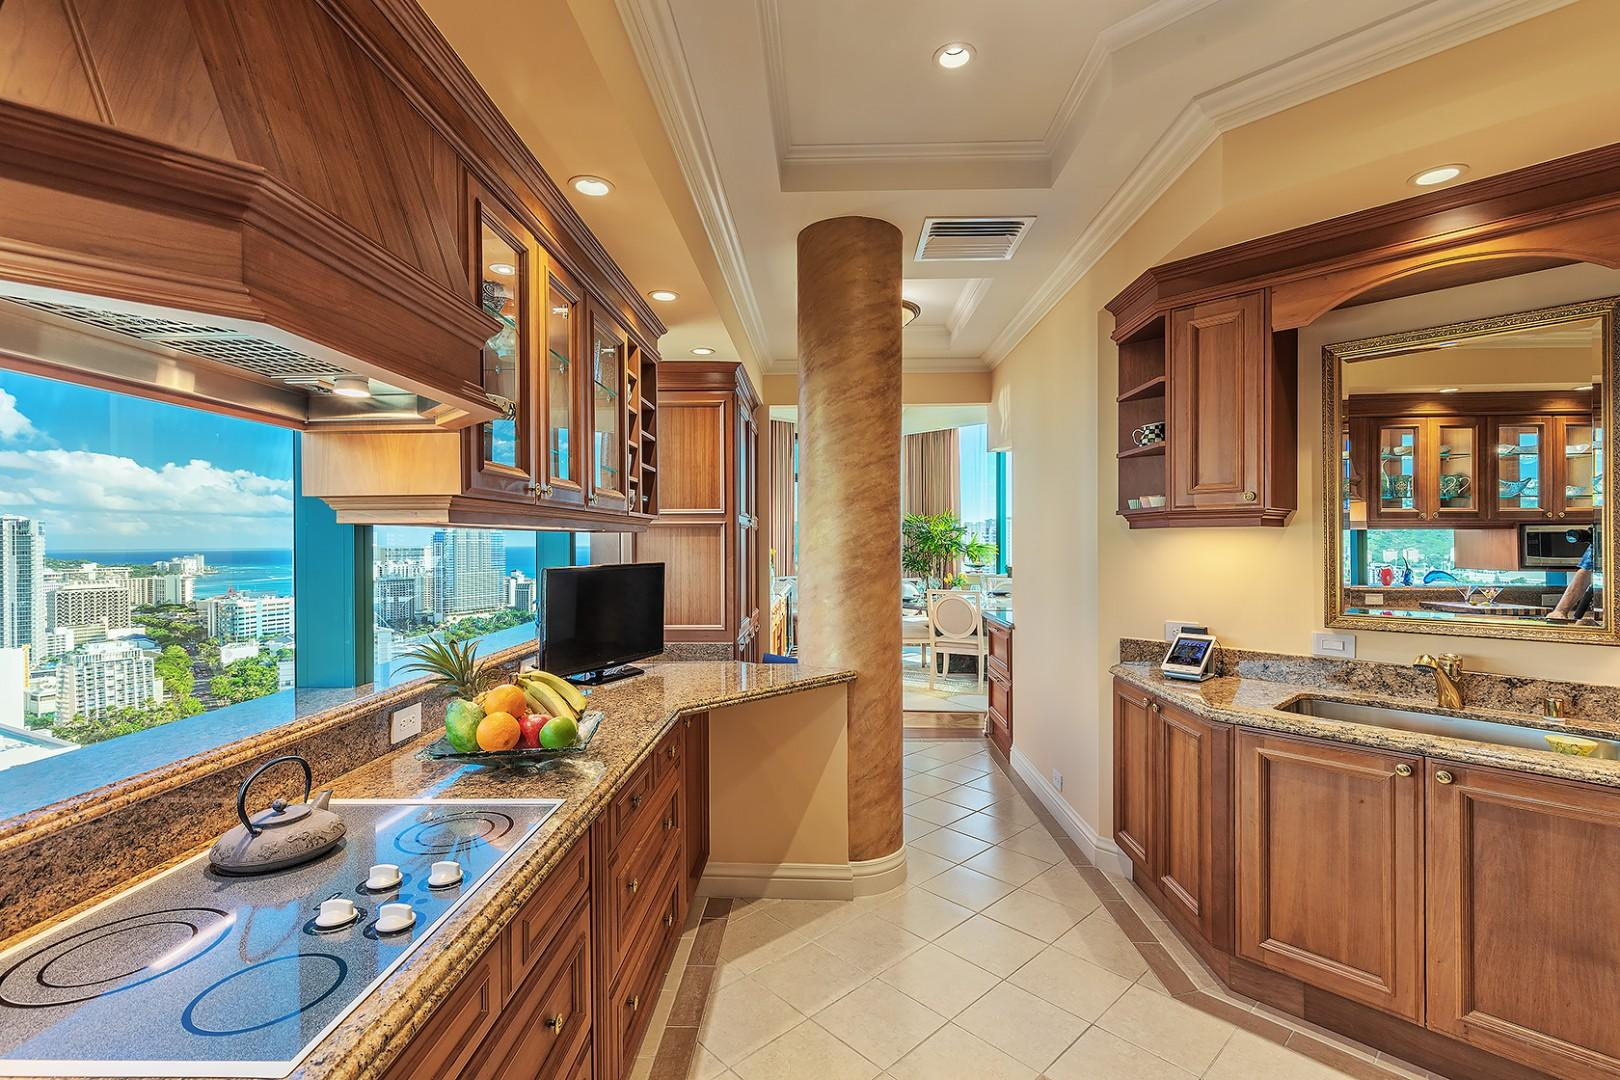 Top of the line Chef Kitchen with Stunning Views